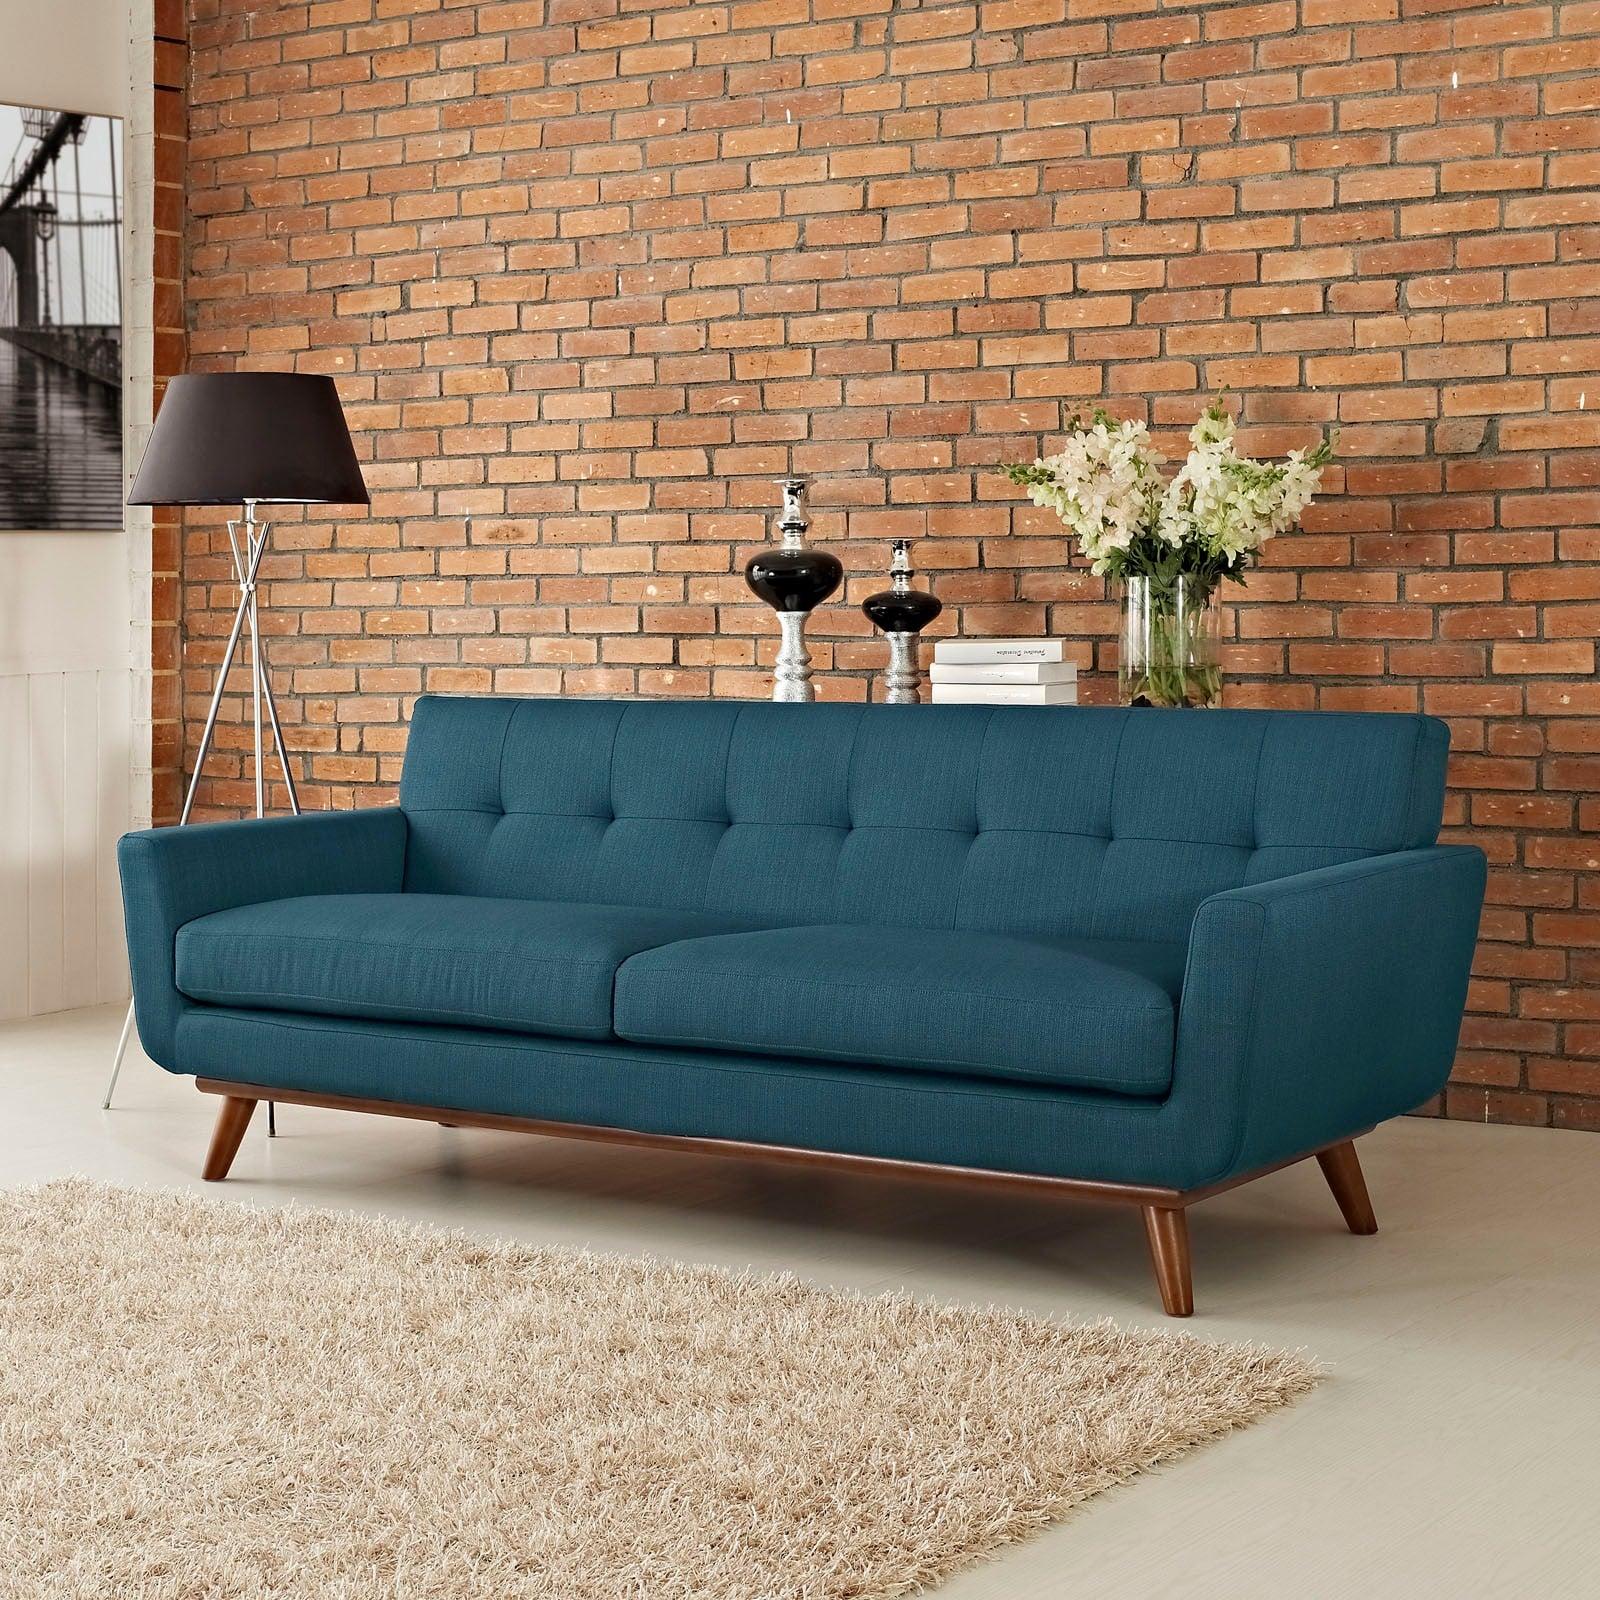 Modway Engage Upholstered Tufted Sofa | Best Affordable Midcentury  Furniture | POPSUGAR Moms Photo 5